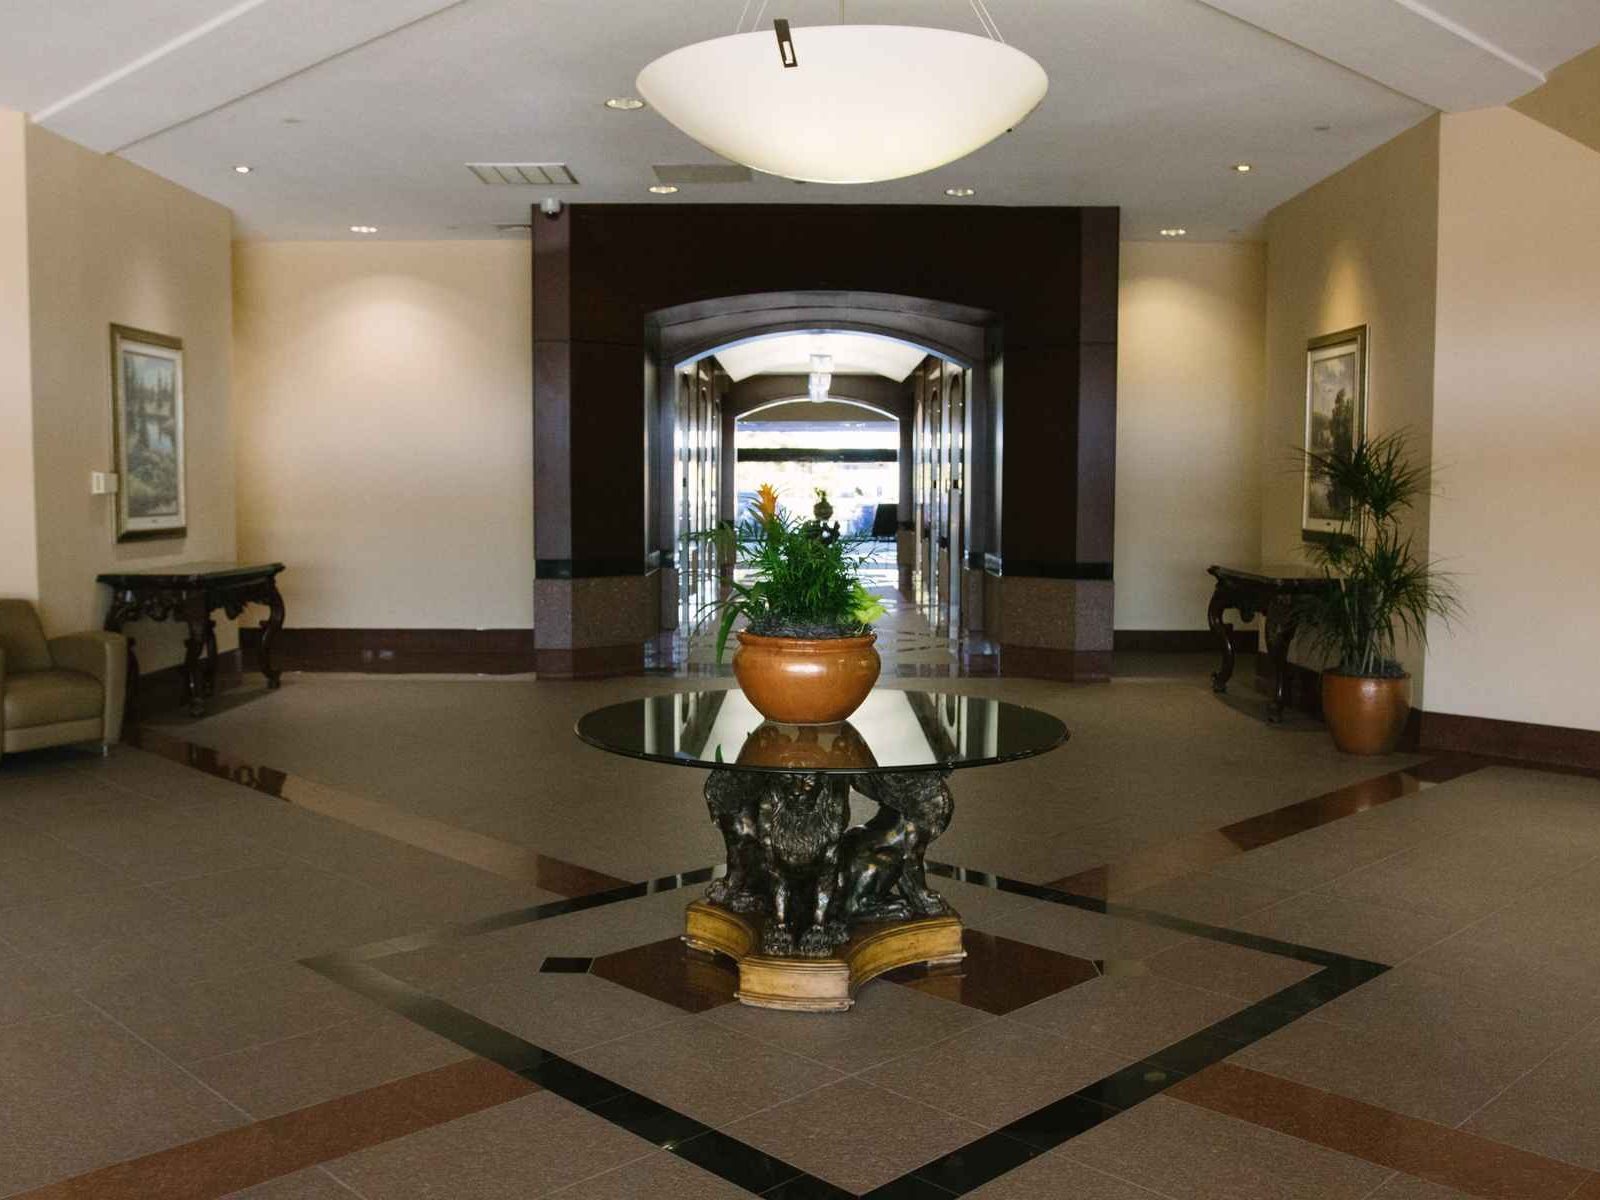 Union Plaza Business Center - Lobby